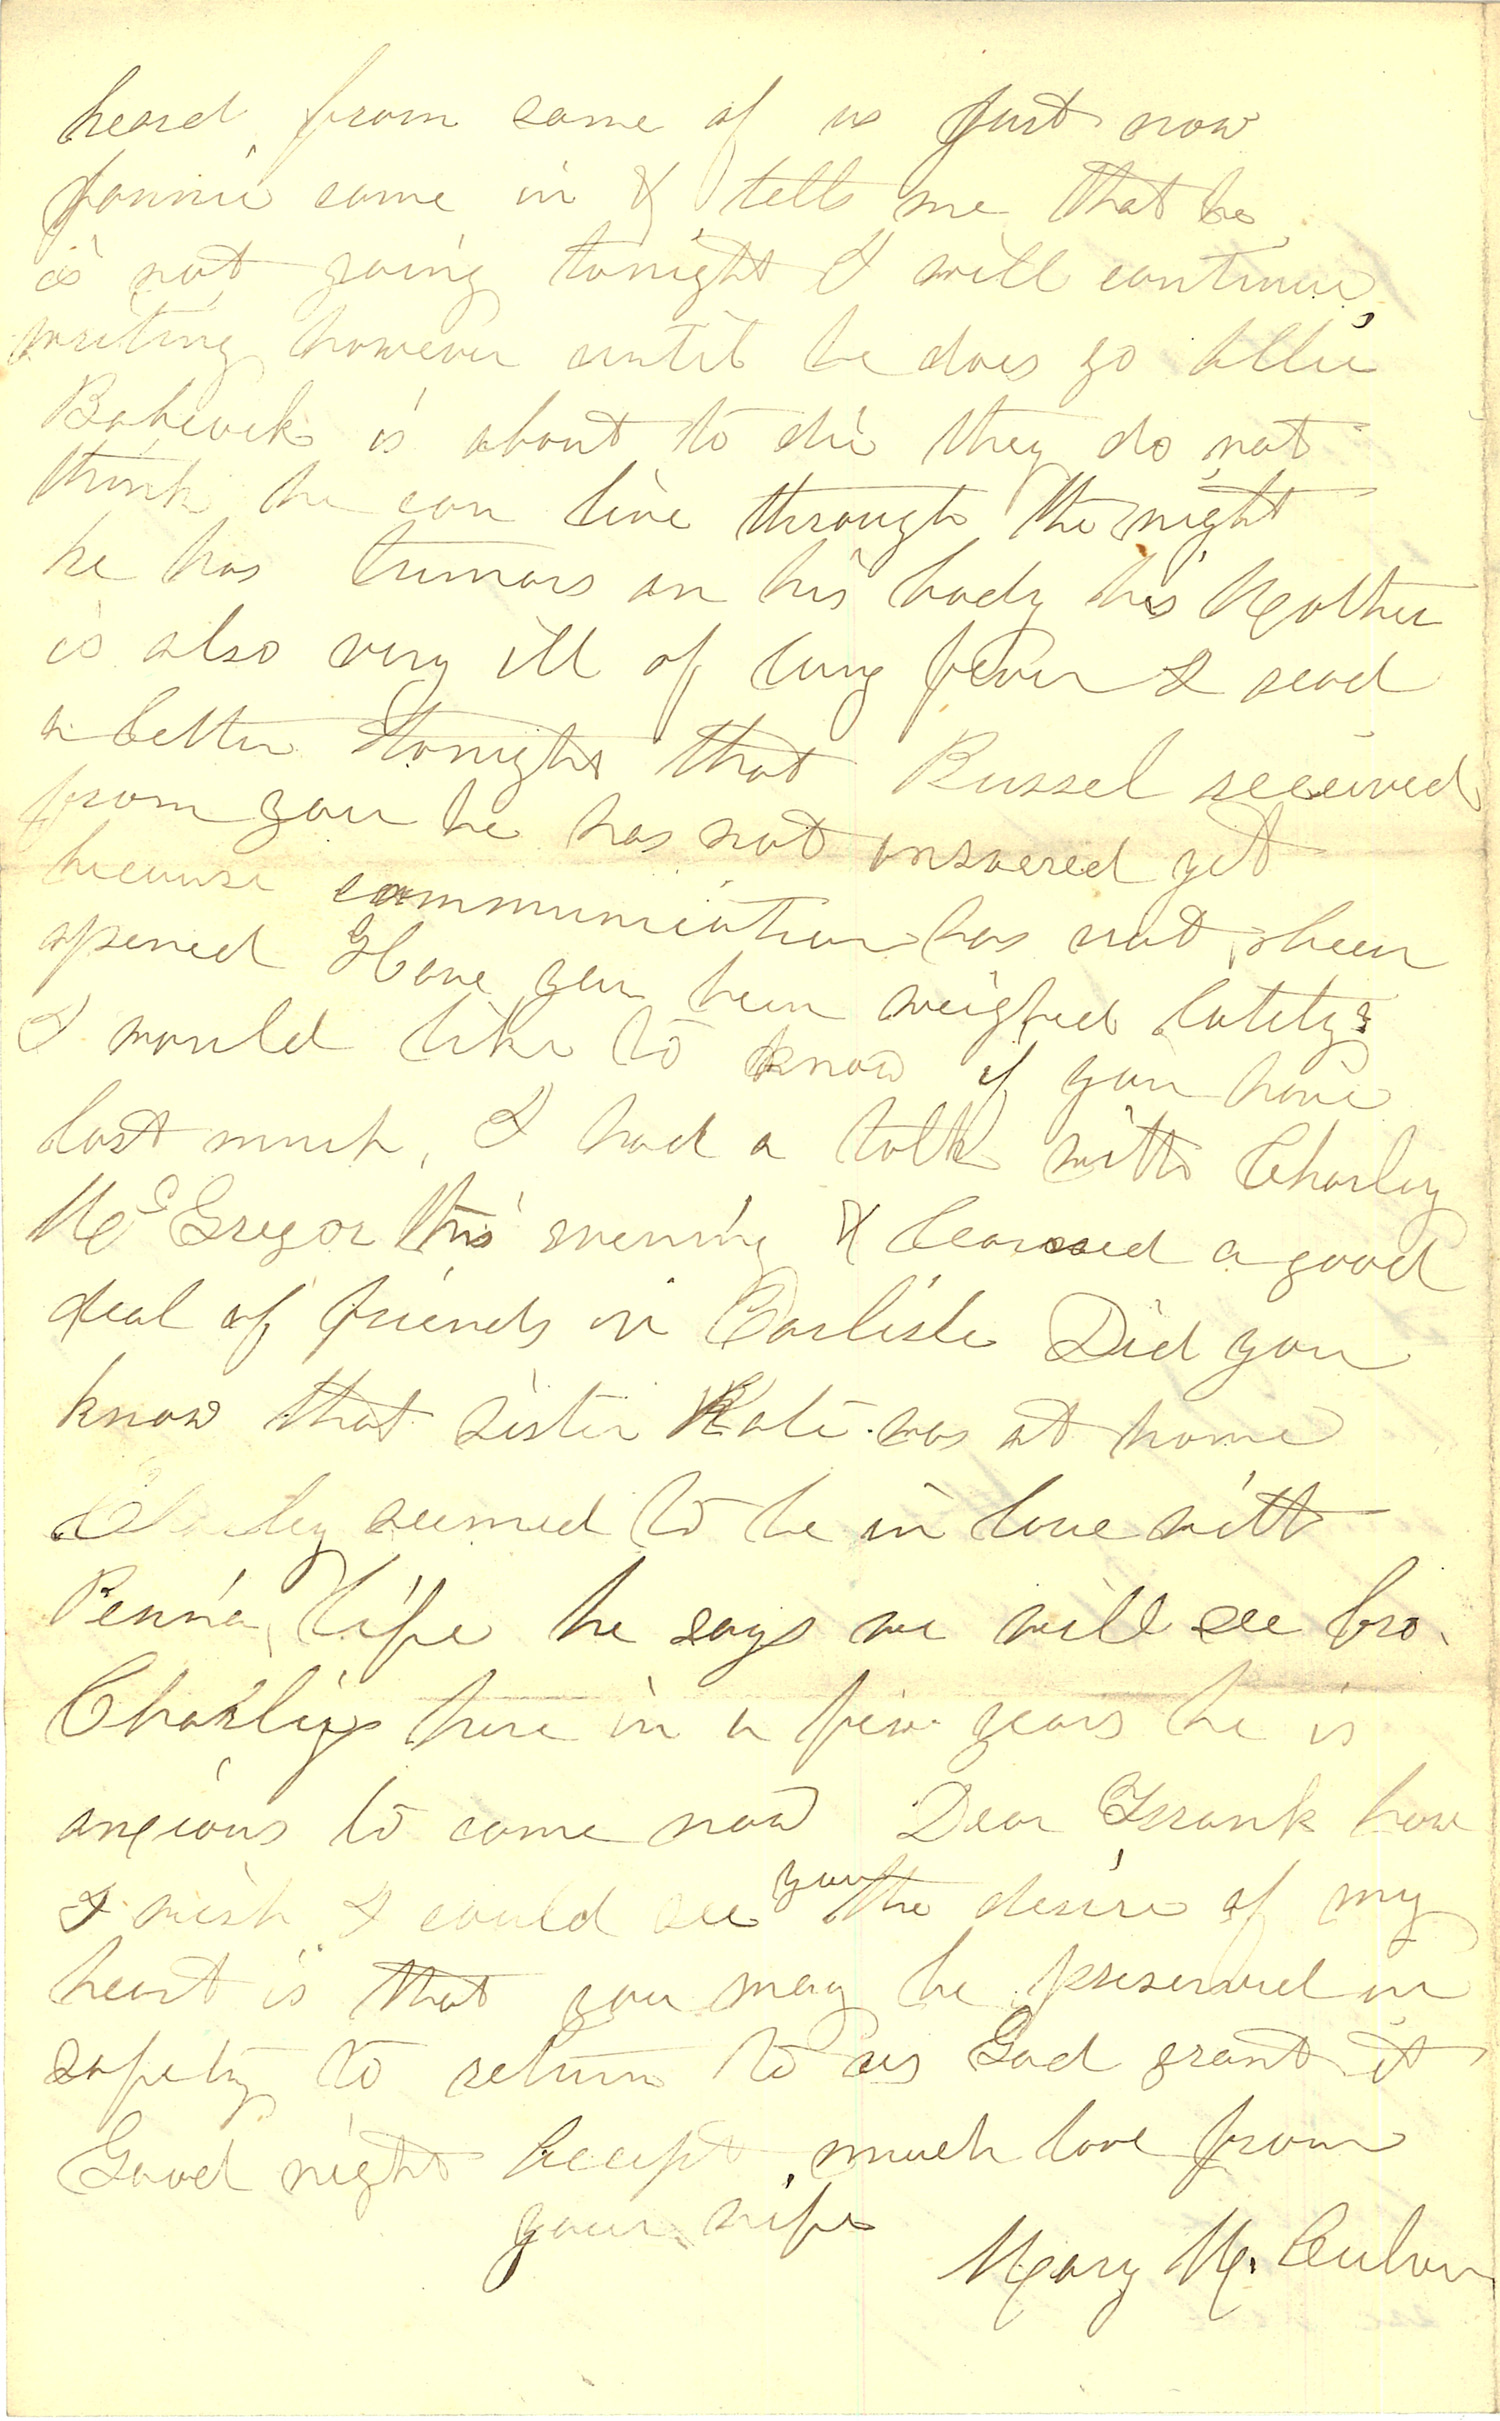 Joseph Culver Letter, January 12, 1863, Letter 2, Page 4